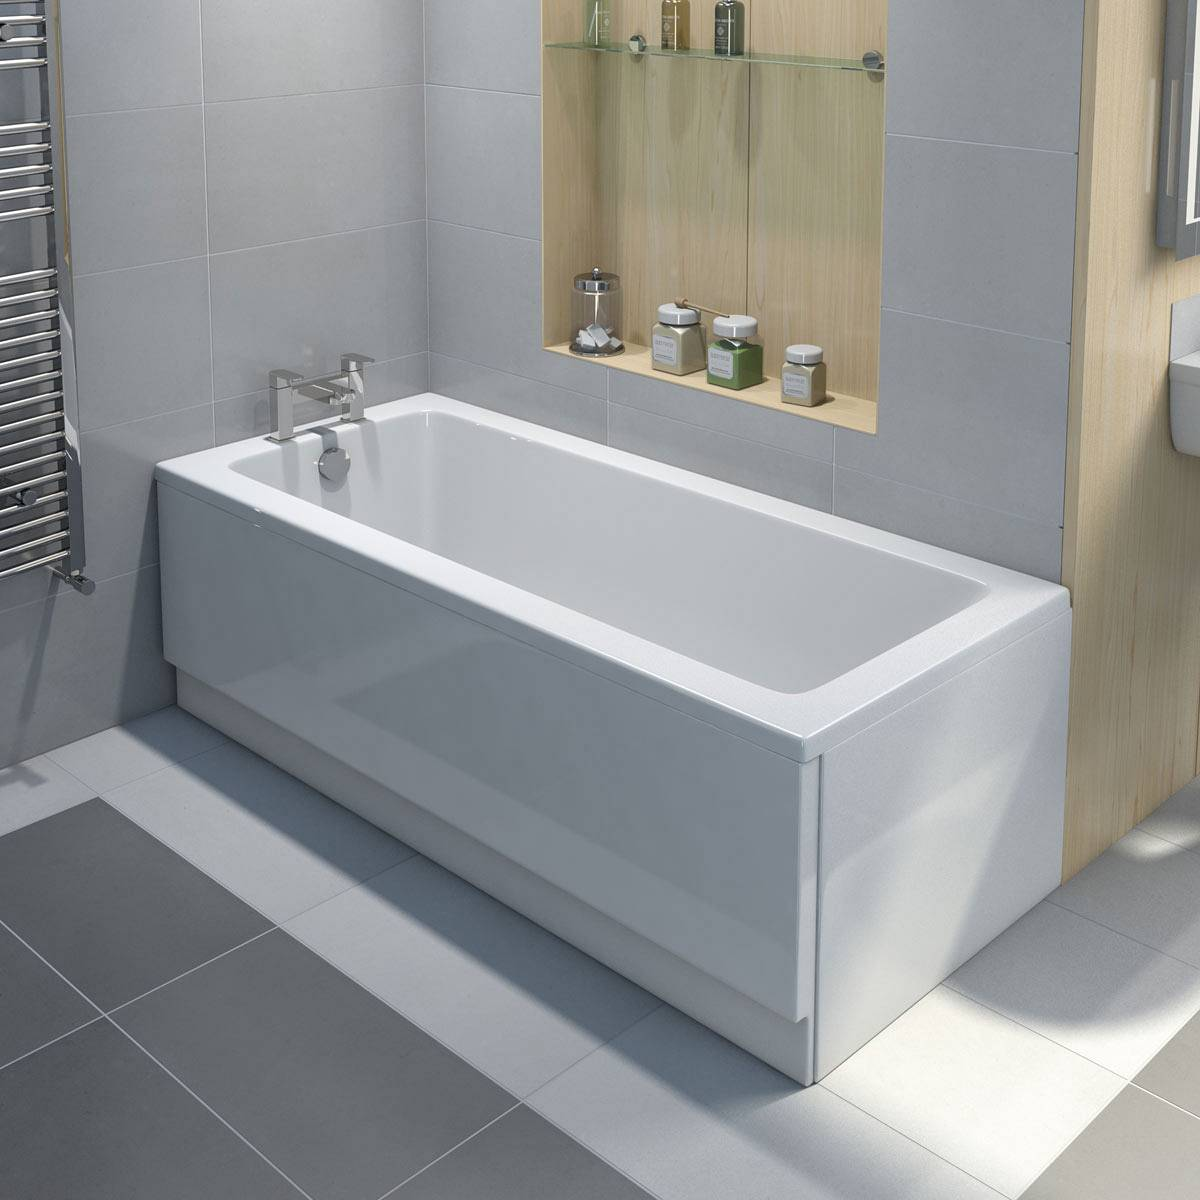 Kensington bath 1800 x 800 for Bath 1800